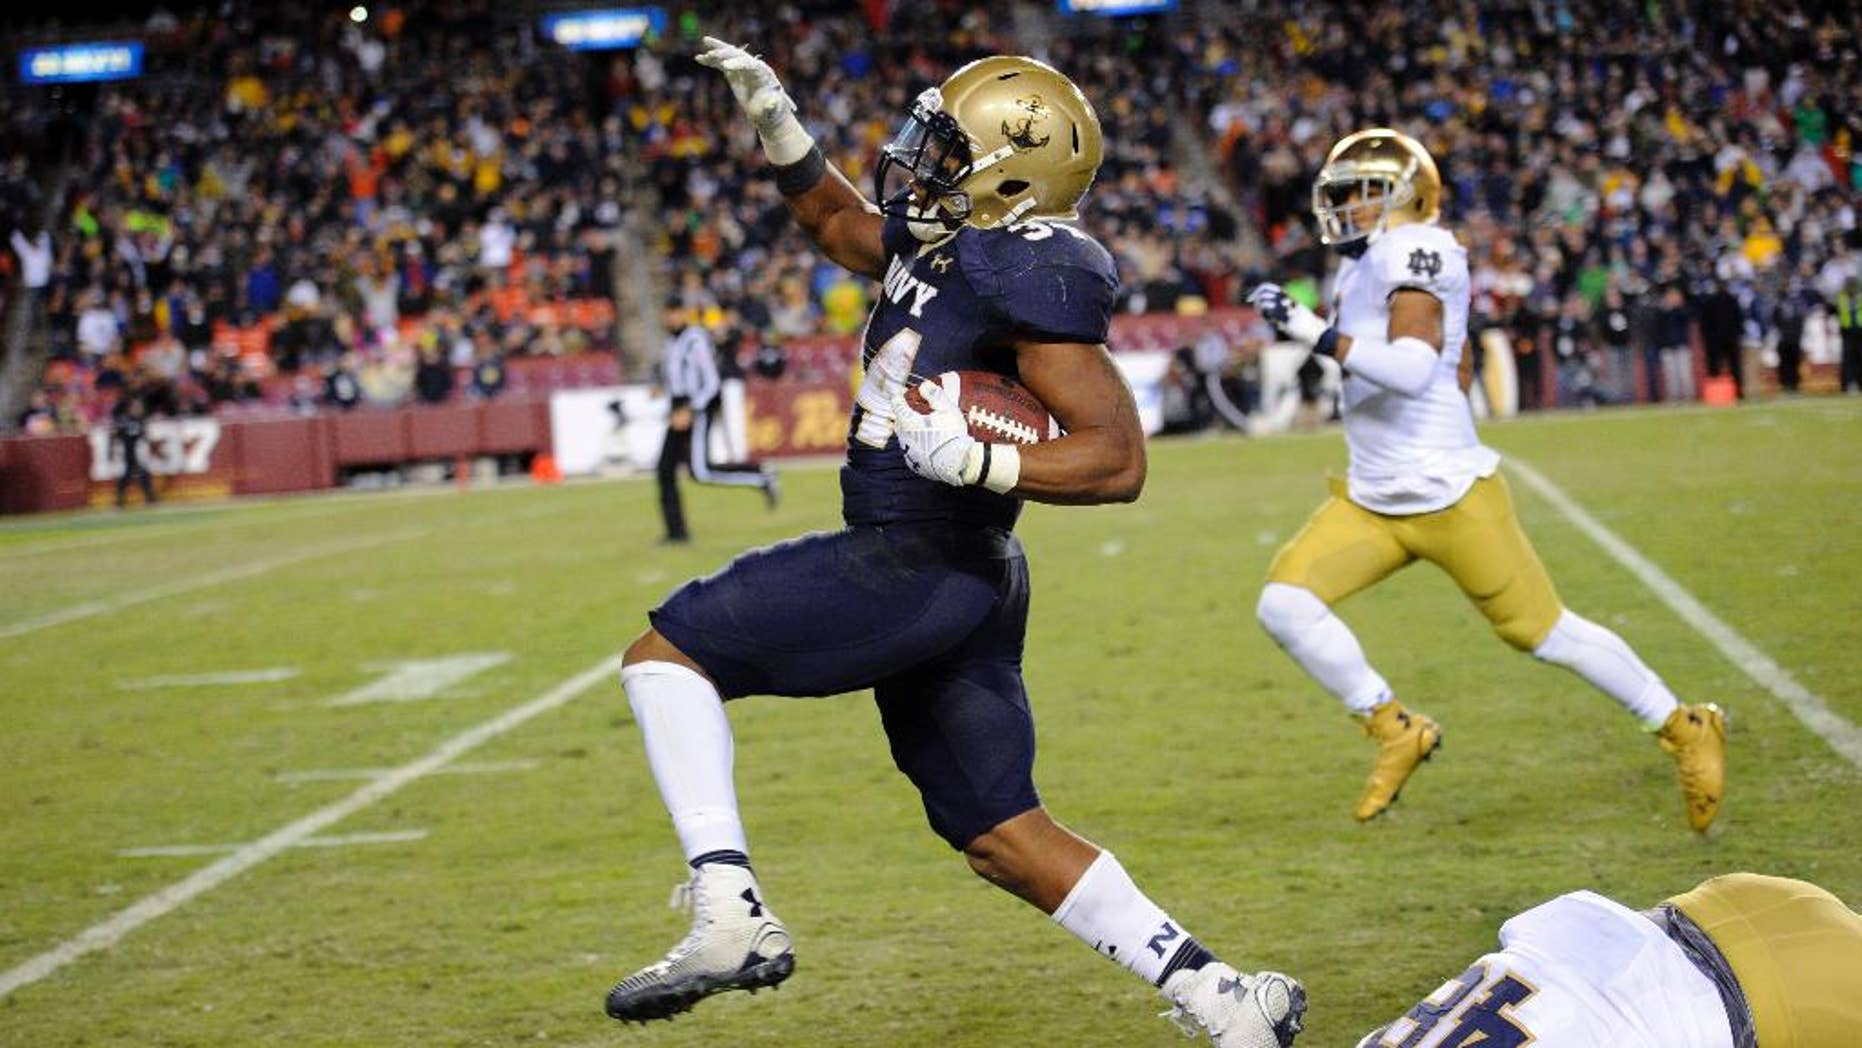 Navy fullback Noah Copeland, left, runs away from Notre Dame linebacker Greer Martini (48) during the second half of an NCAA college football game, Saturday, Nov. 1, 2014, in Landover, Md. Notre Dame won 49-39. (AP Photo/Nick Wass)